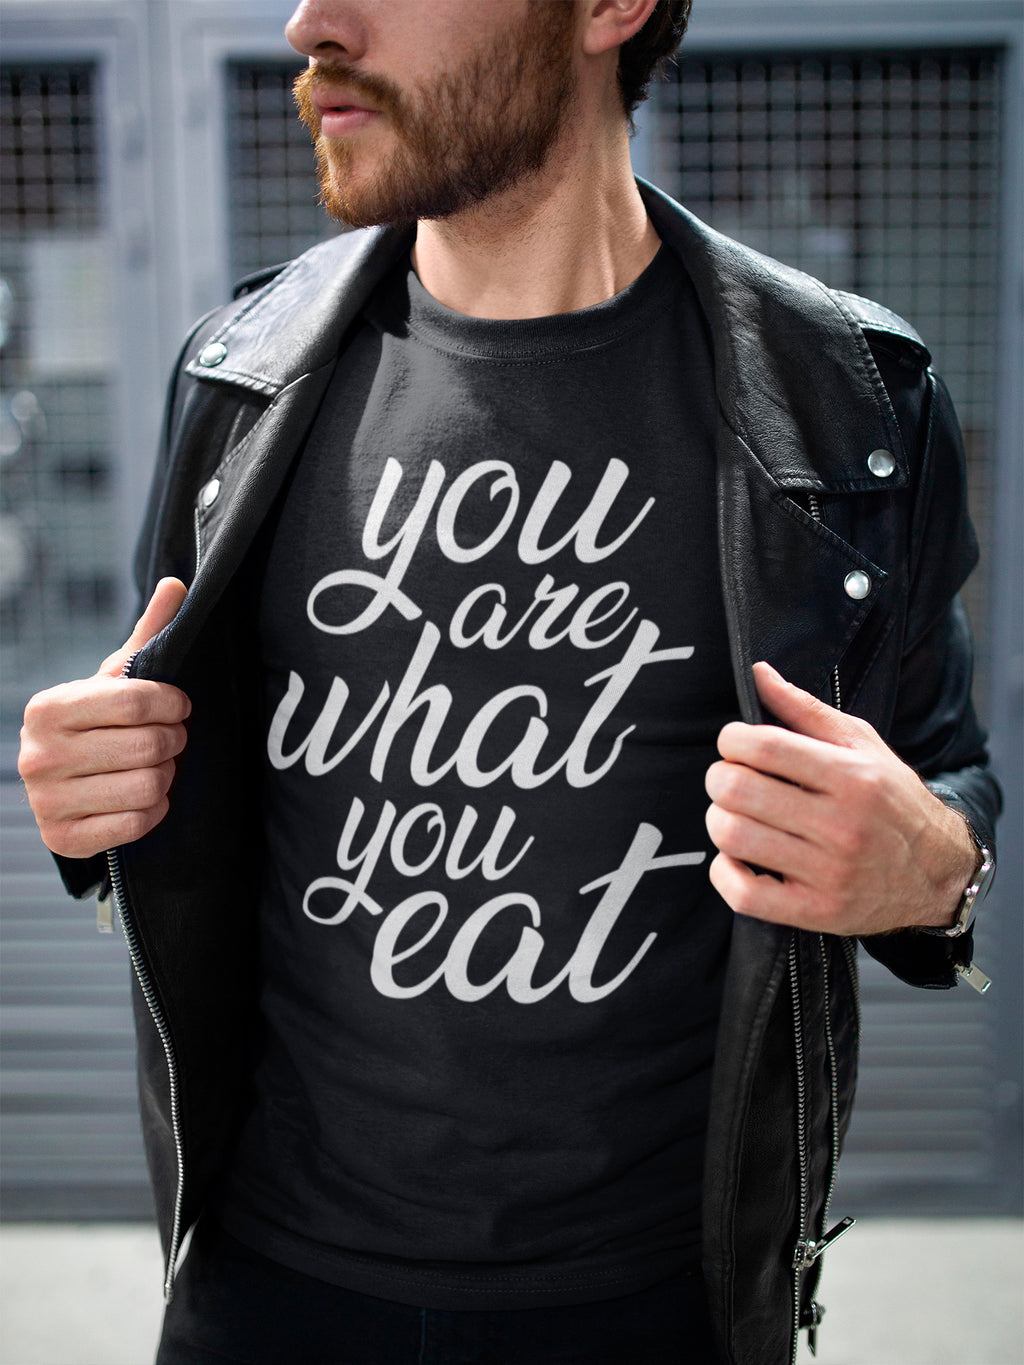 You are what you eat - Vegan t-shirt